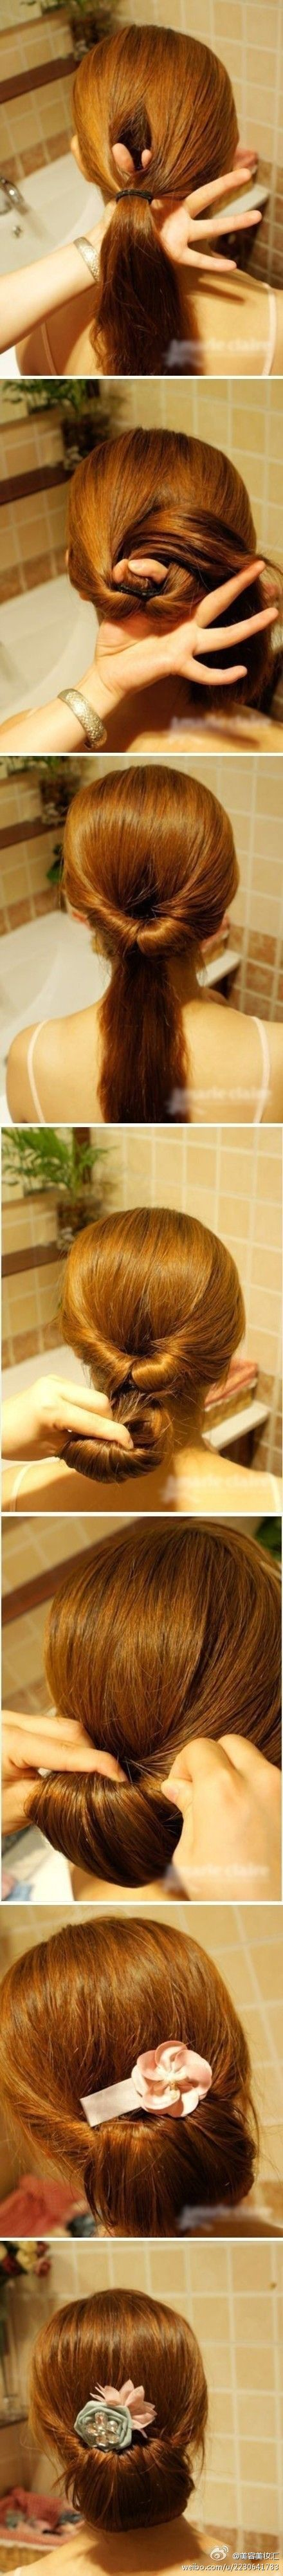 I've done the ponytail, never thought to continue into a bun. SO CUTE!